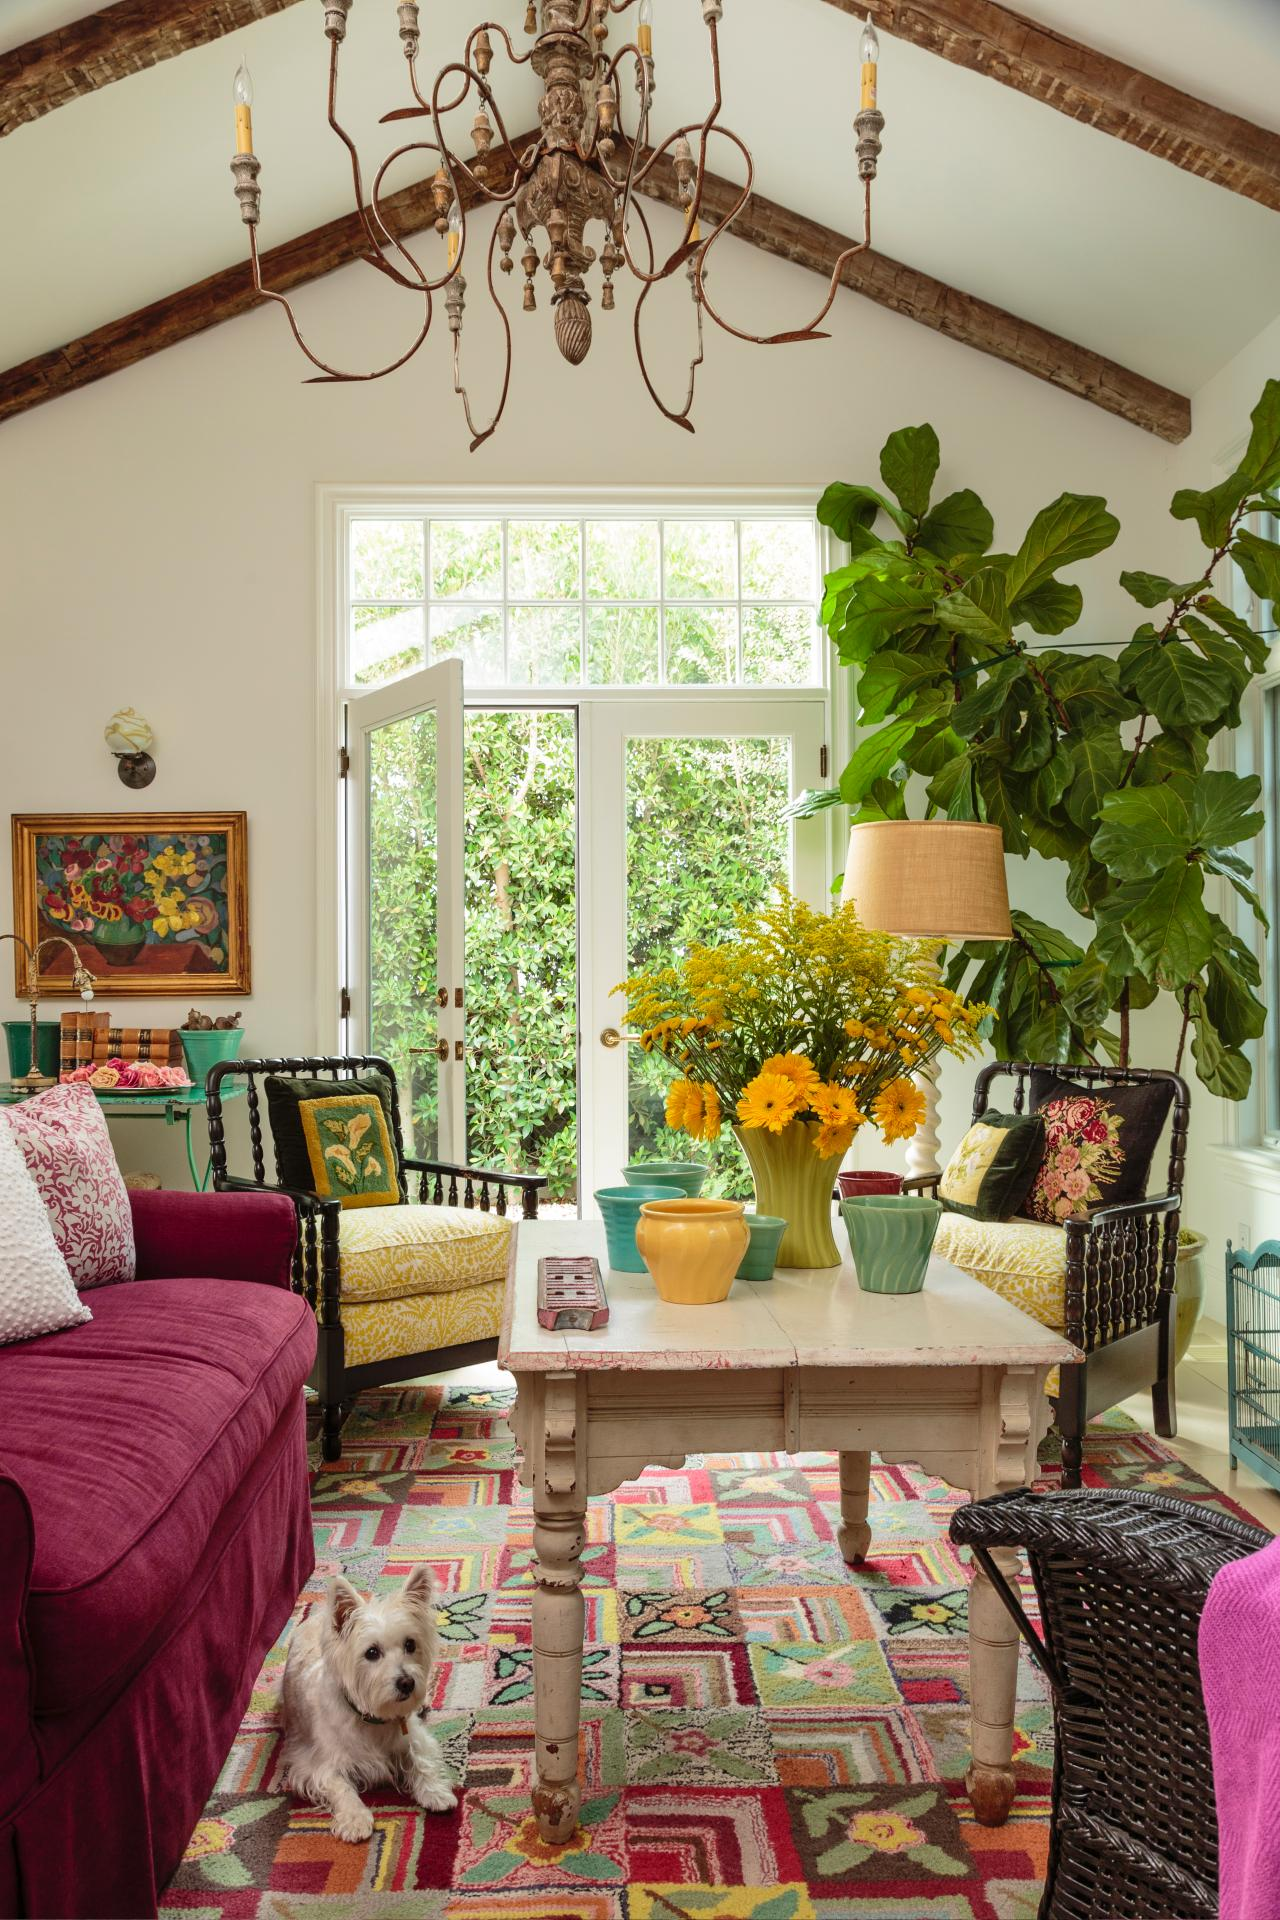 Interior Design For Living Room For Small Space: Take A Peek Inside This Colorful California Cottage